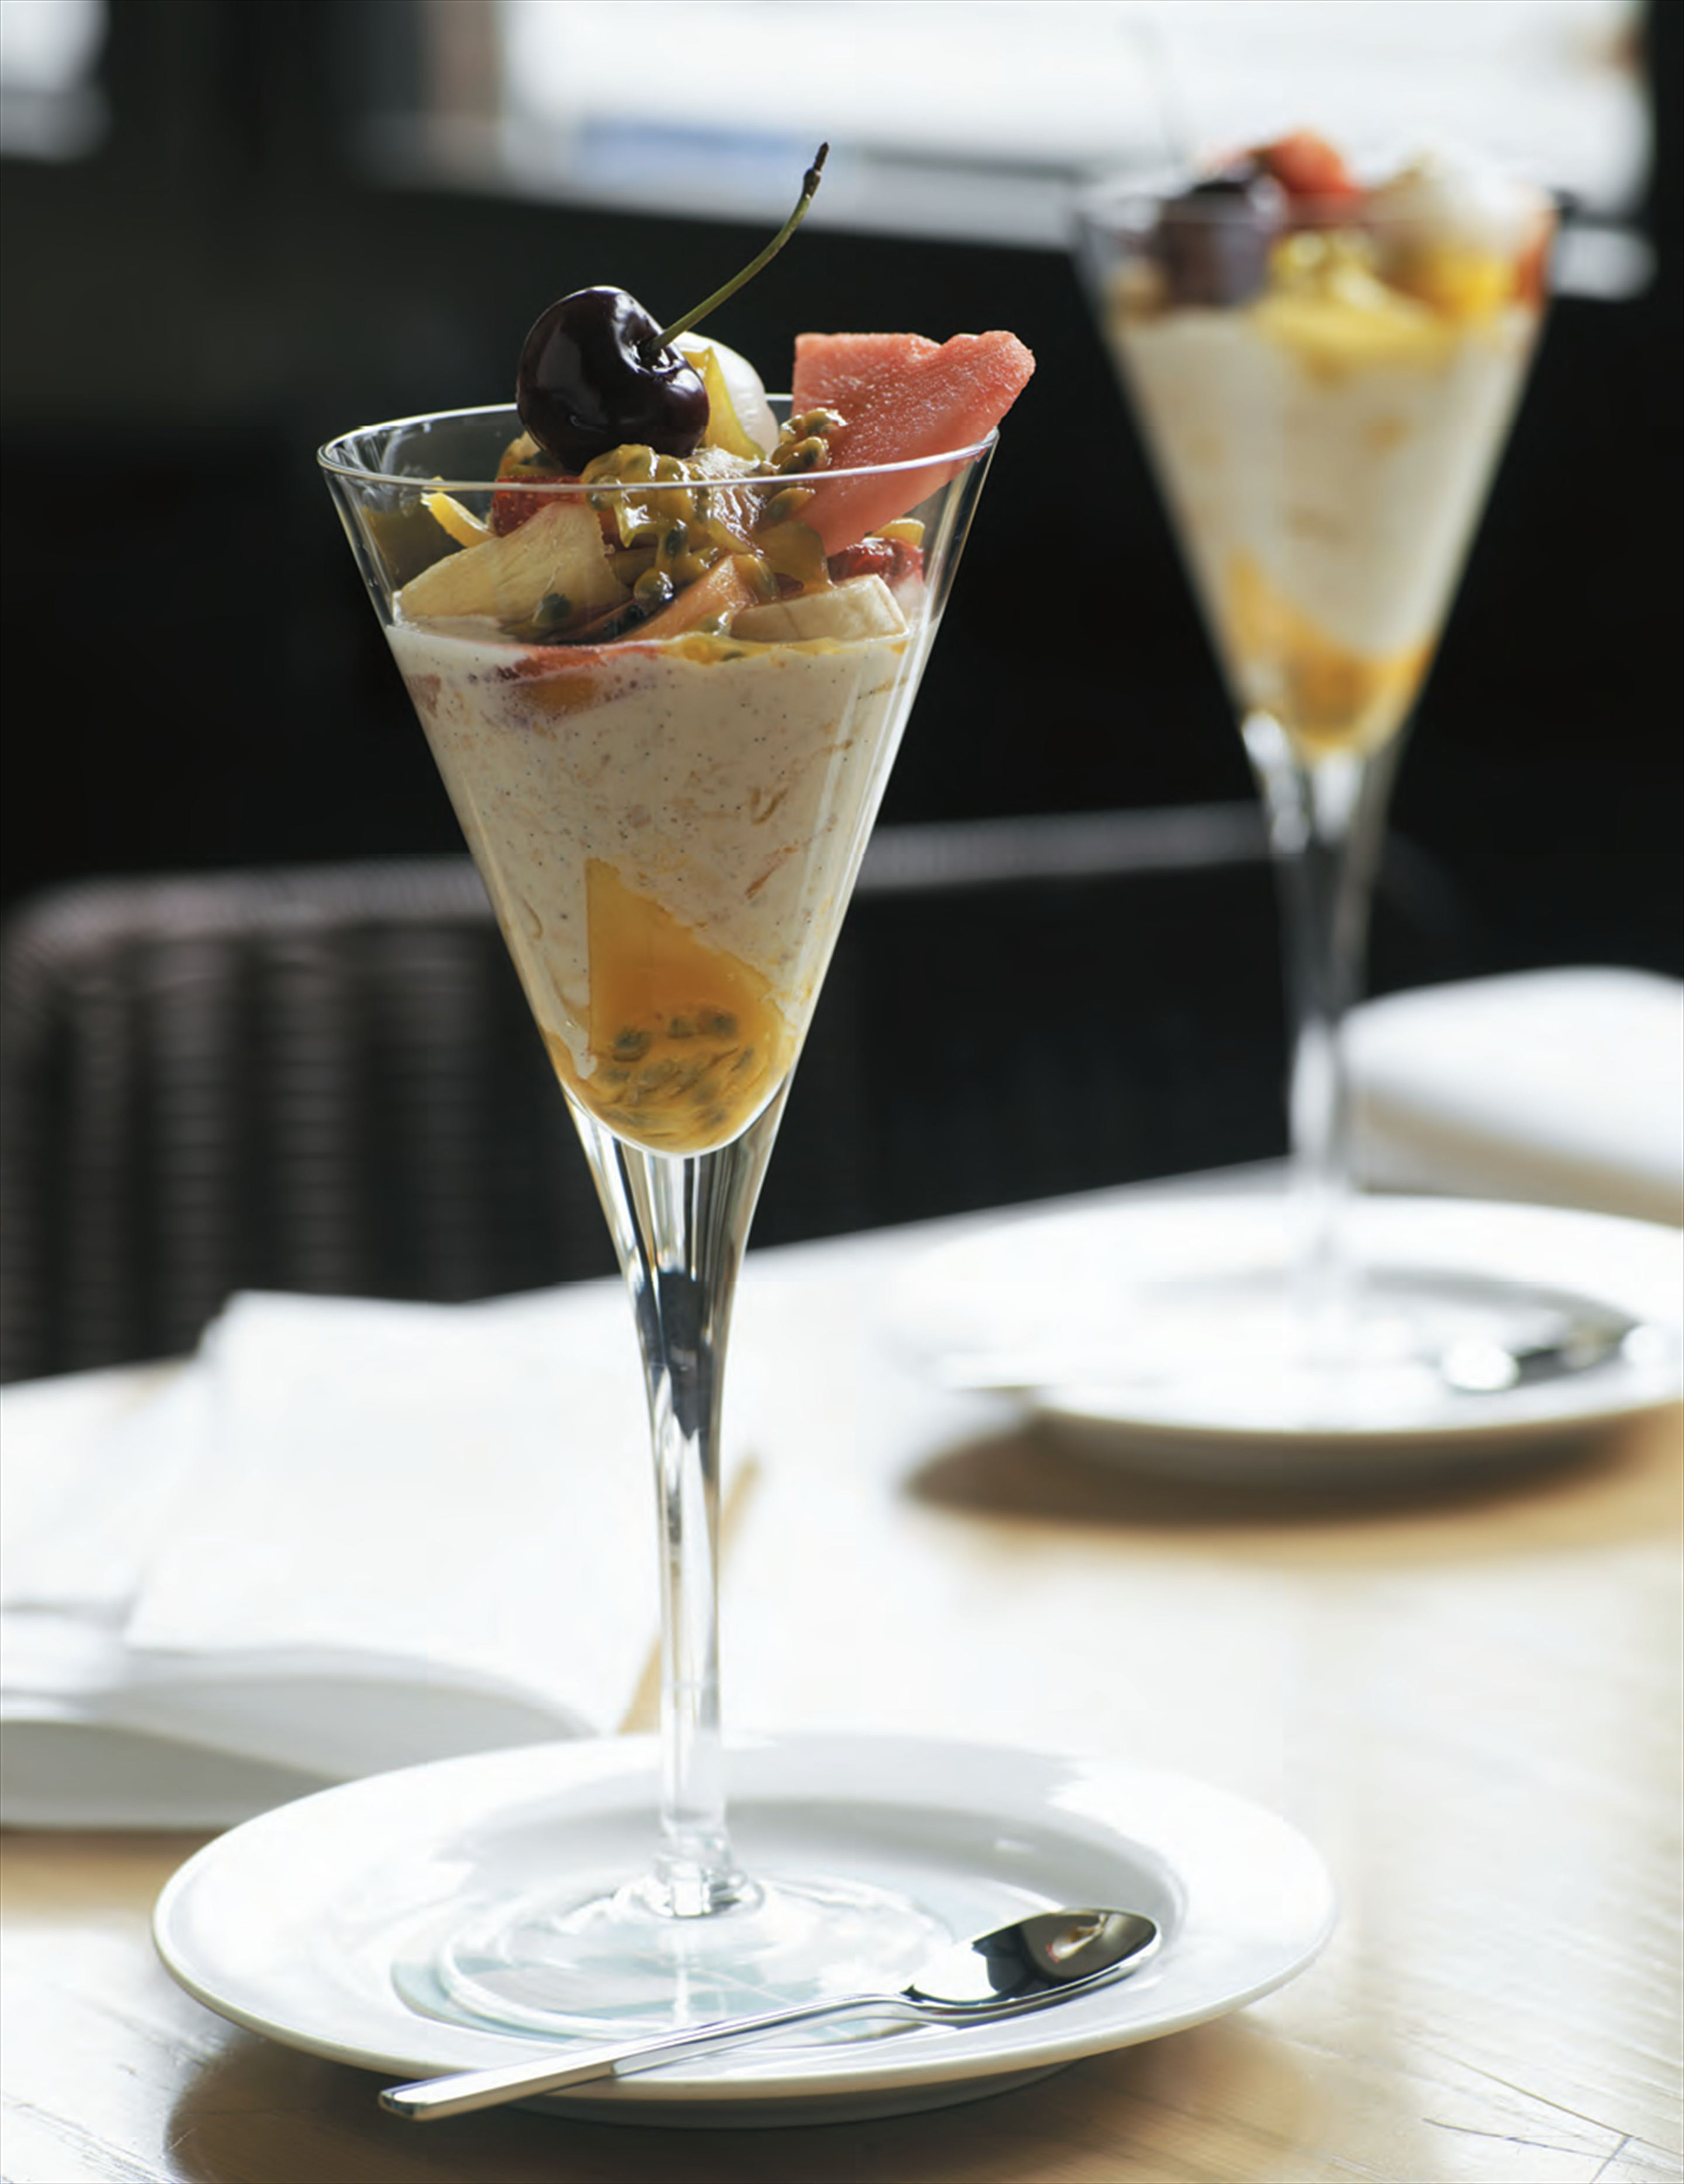 Mango and coconut muesli with exotic fruits